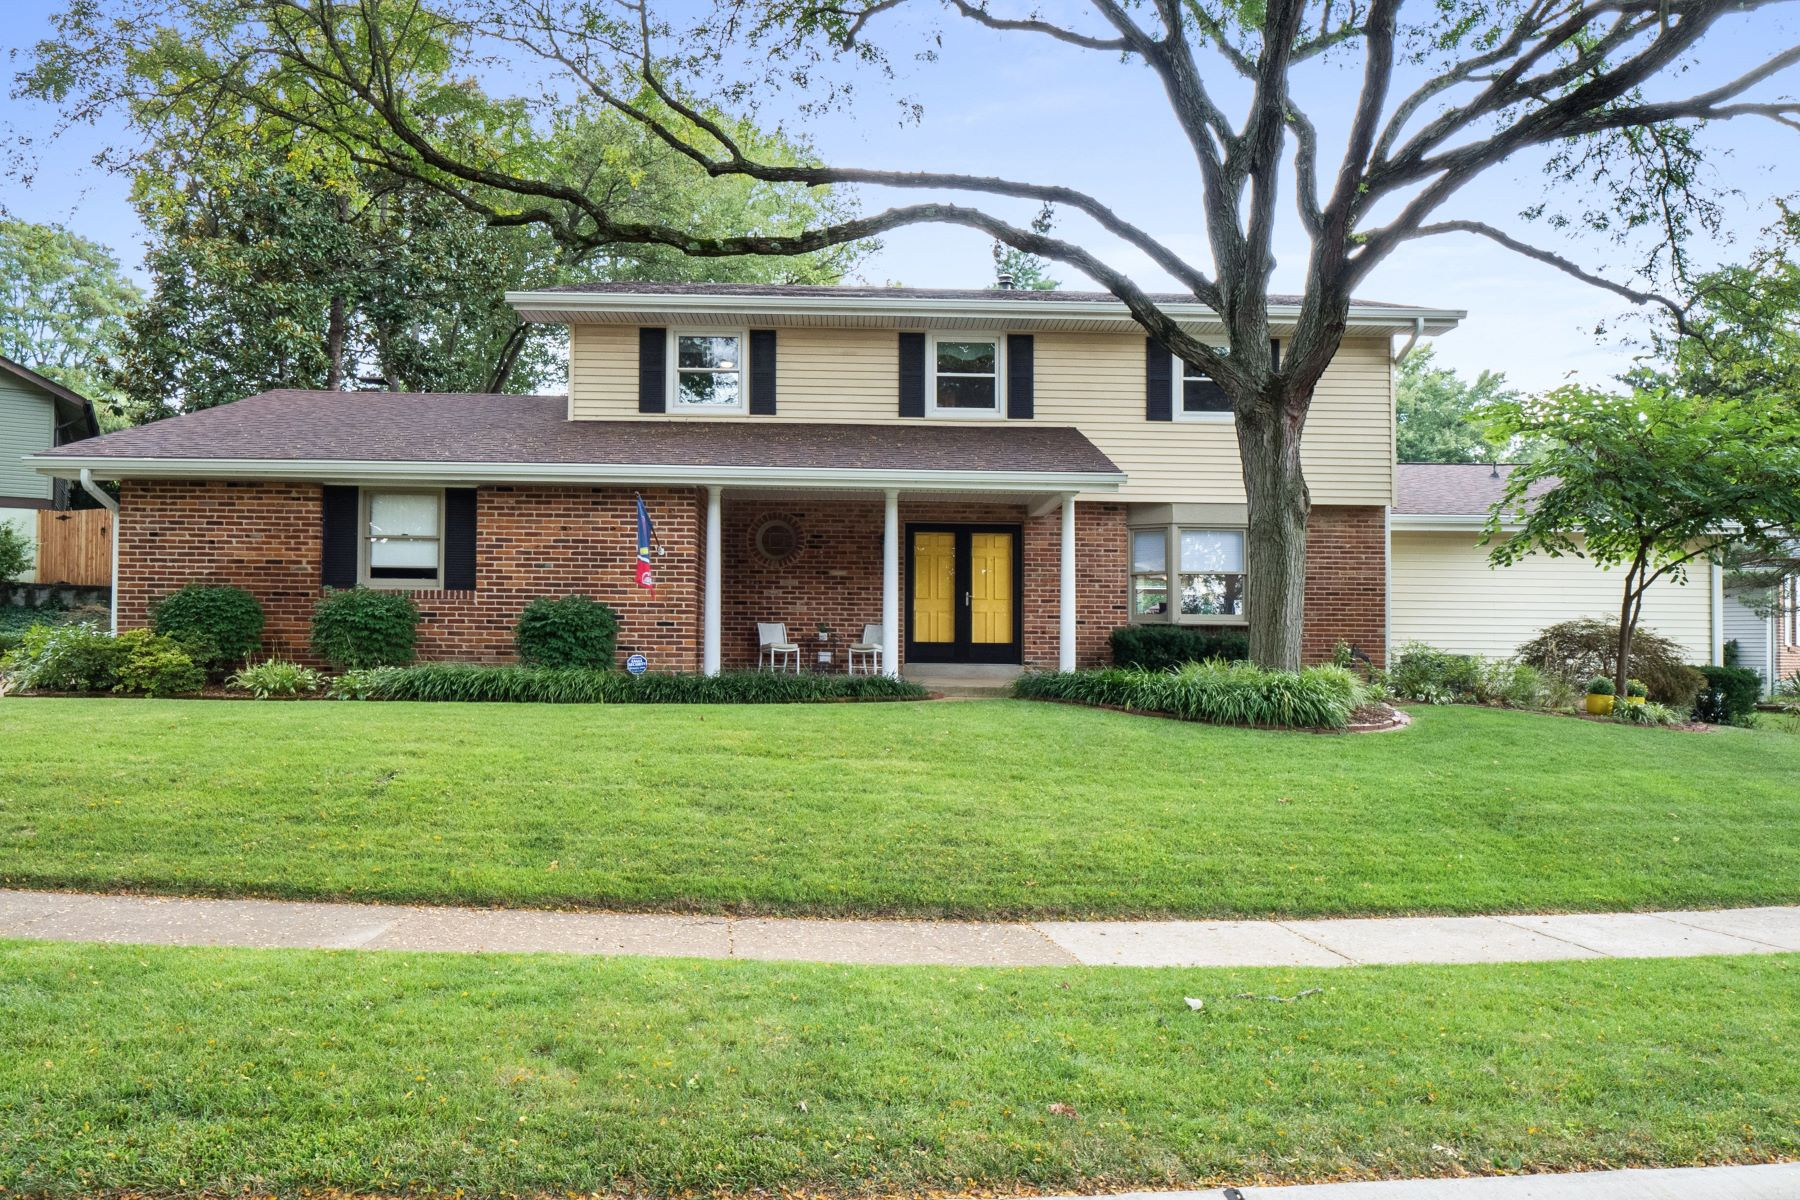 Single Family Homes for Sale at Meticulously Maintained Creve Coeur Home 12930 Somerton Ridge Drive Creve Coeur, Missouri 63141 United States